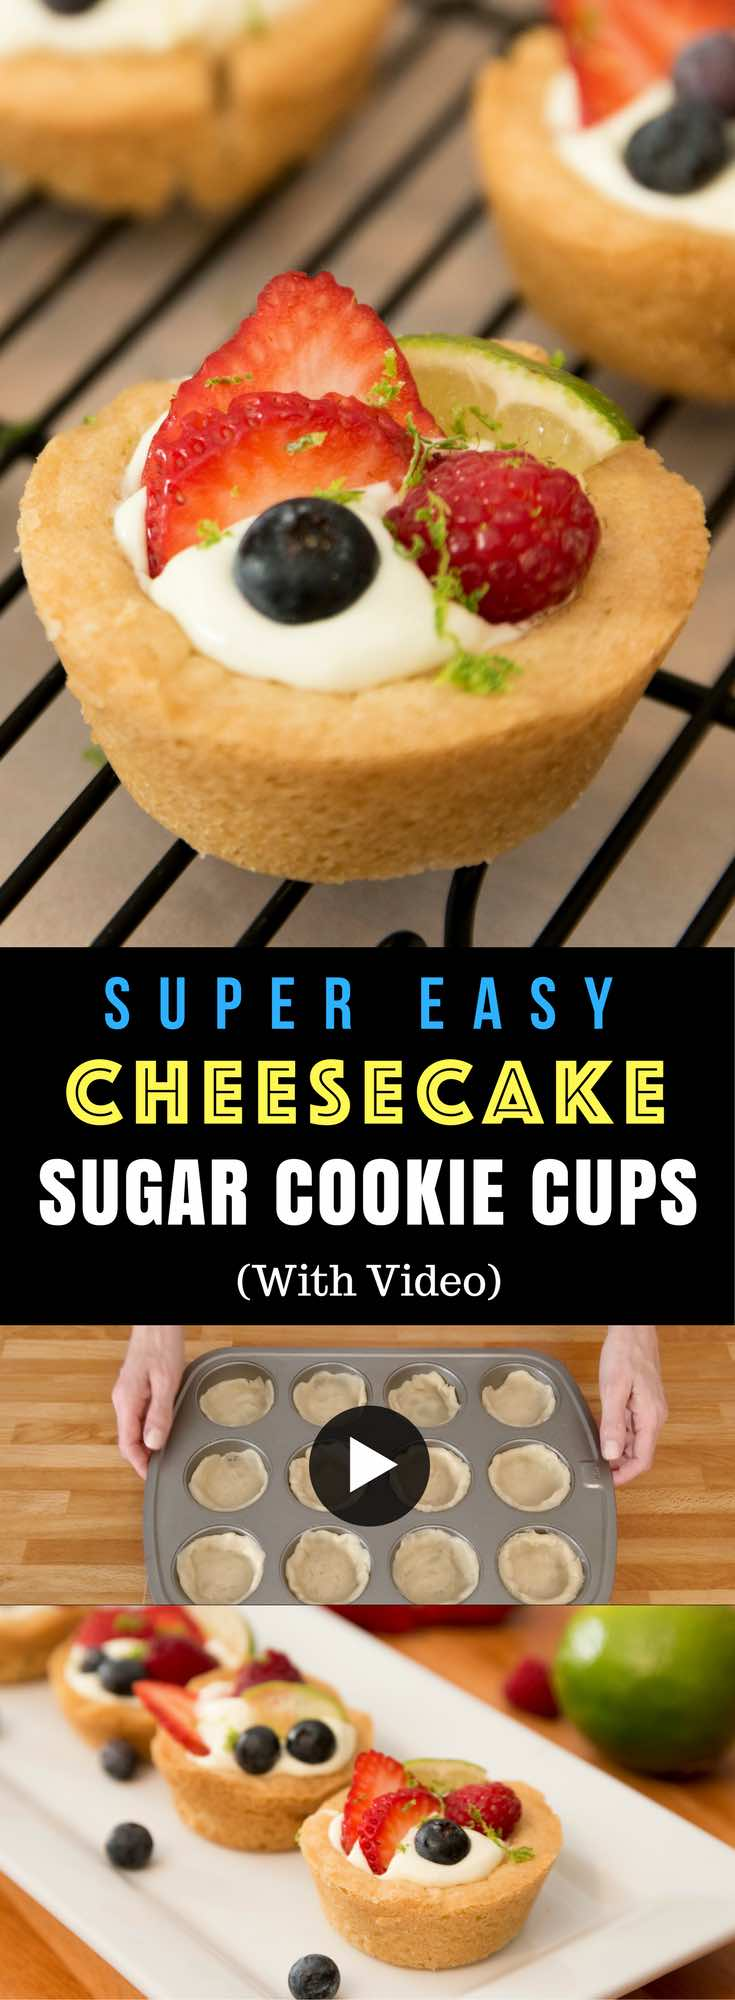 Sugar Cookie Cups with a flakey shell and key lime pie filling and fresh berries on top! The perfect make-ahead dessert for summertime parties and barbecues. #sugarcookiecups